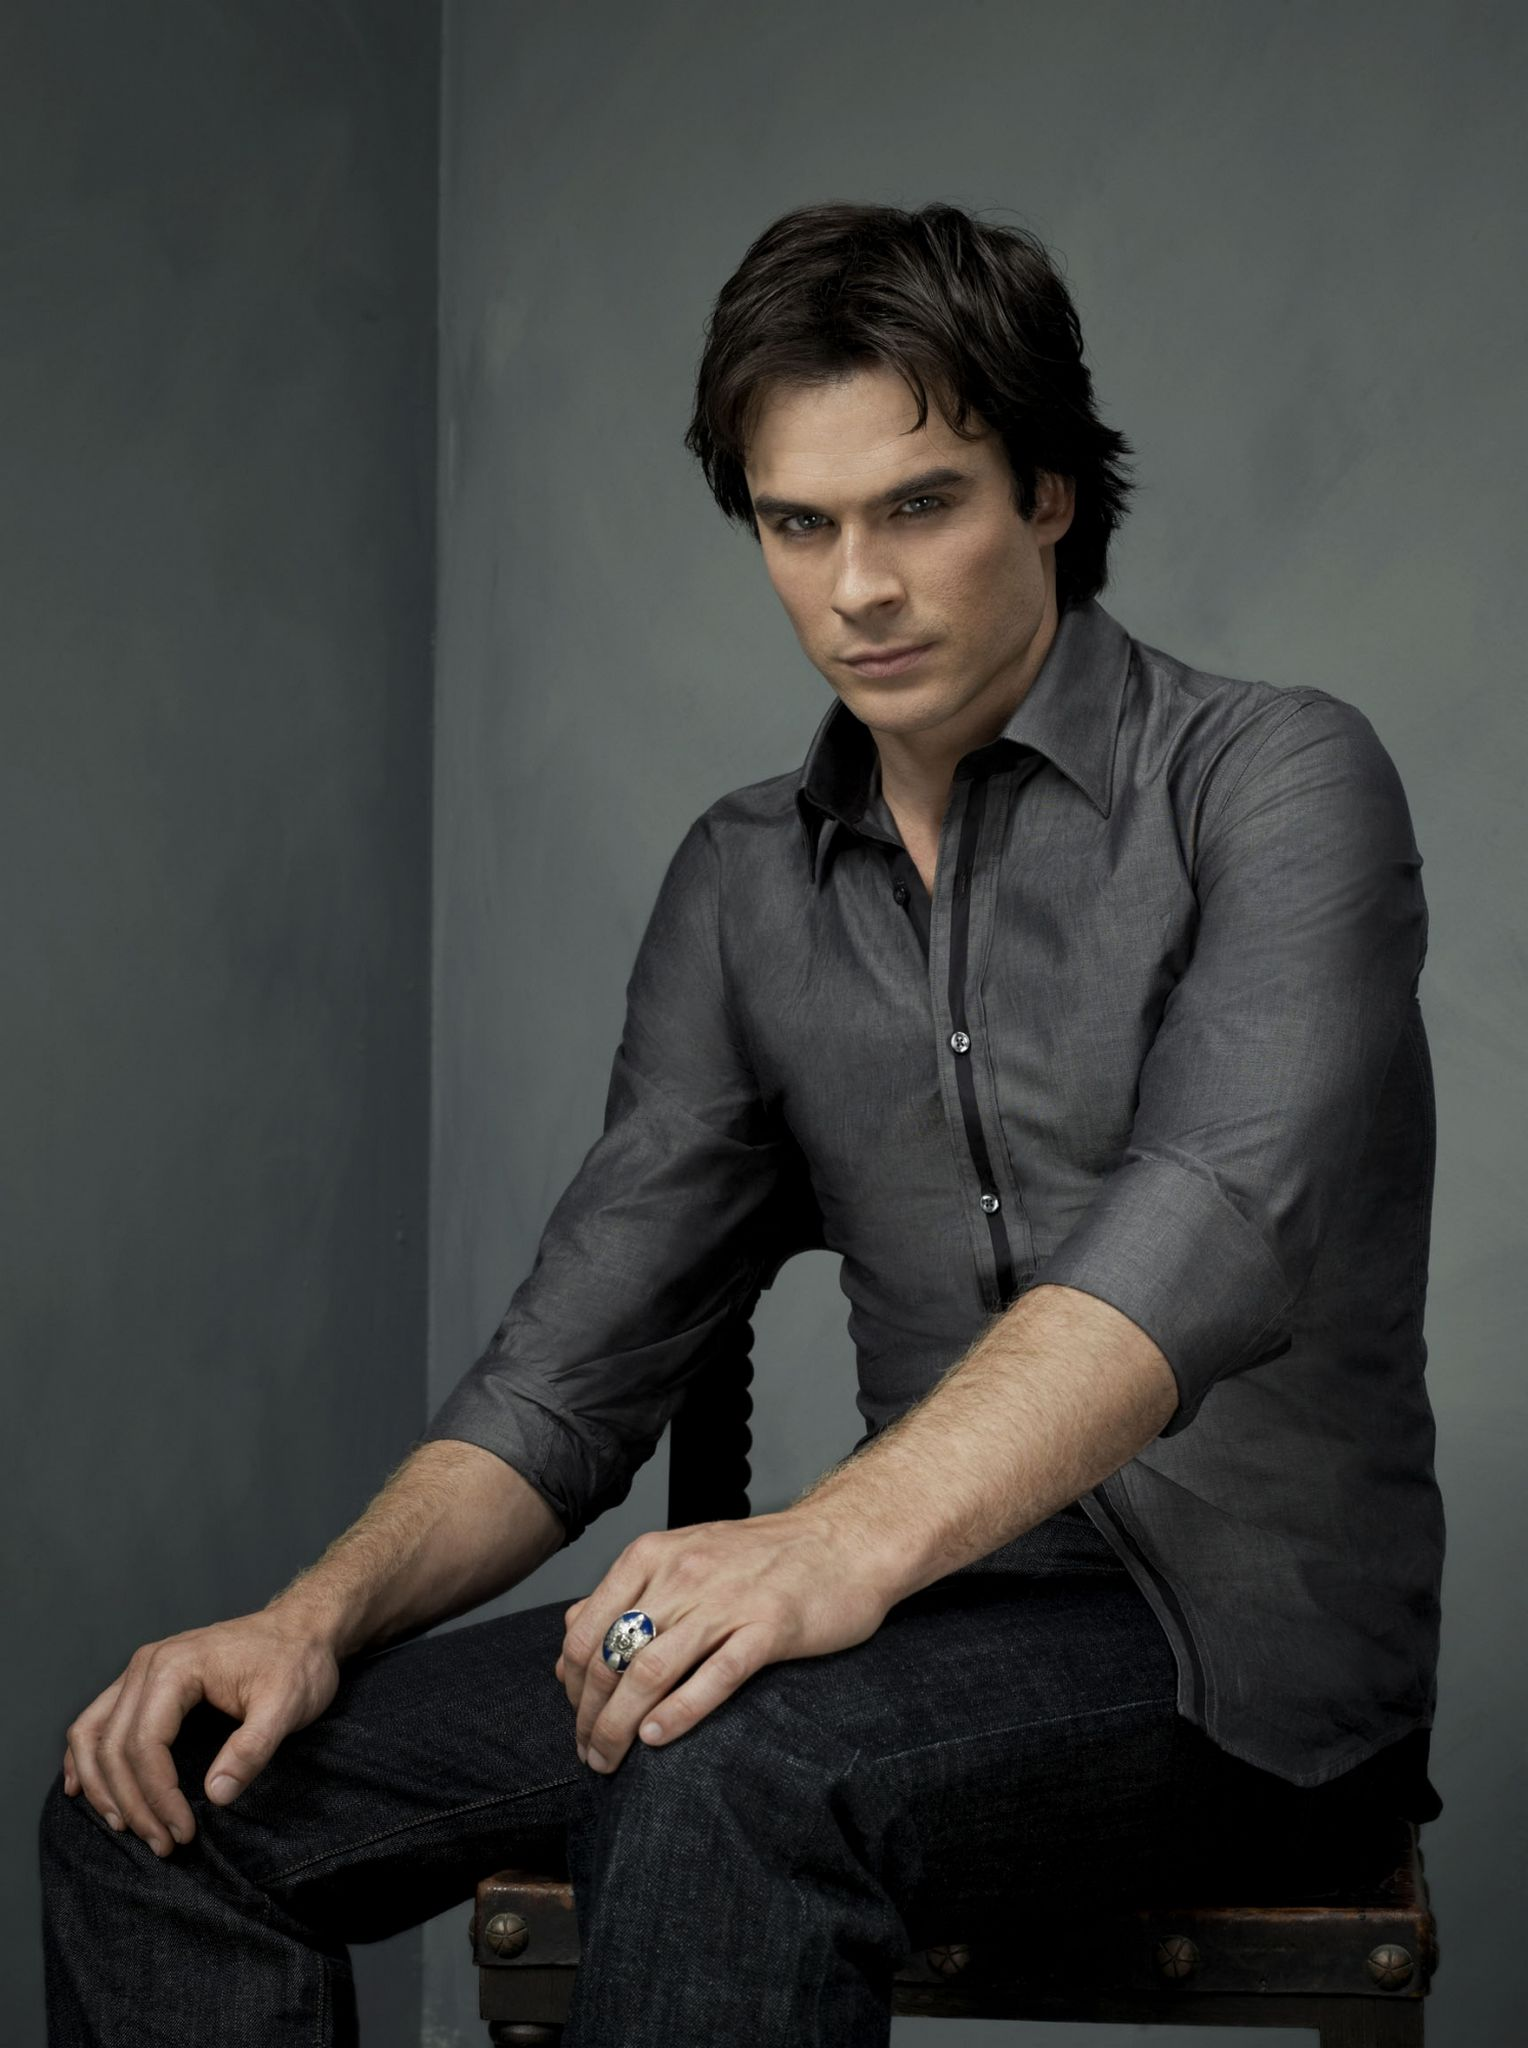 ian somerhalder damon vampire - photo #19